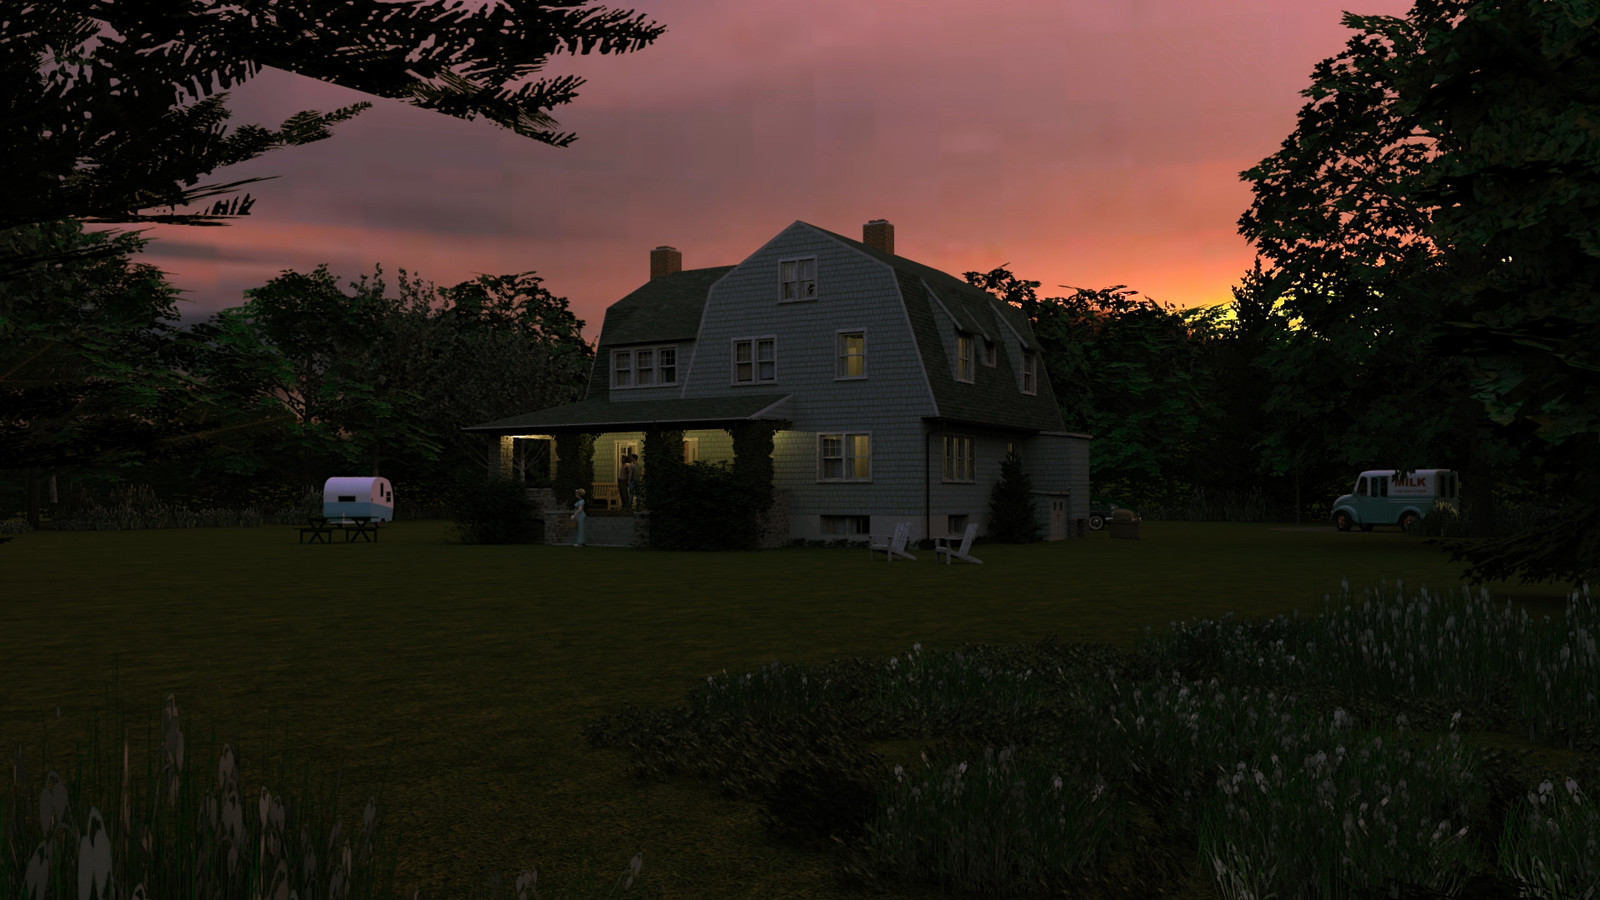 """""""Mason Farm - Homestead's Heart (Dusk)"""" Magic Hour Collection  27 Masonfarm HD1080 15b - iP Kodac  """"SketchUp to LayOut"""" The Mason Farm Renders for the launching of the new book """"SketchUp to LayOut"""" http://bit.ly/2j0d0Wh by MasterSketchup."""